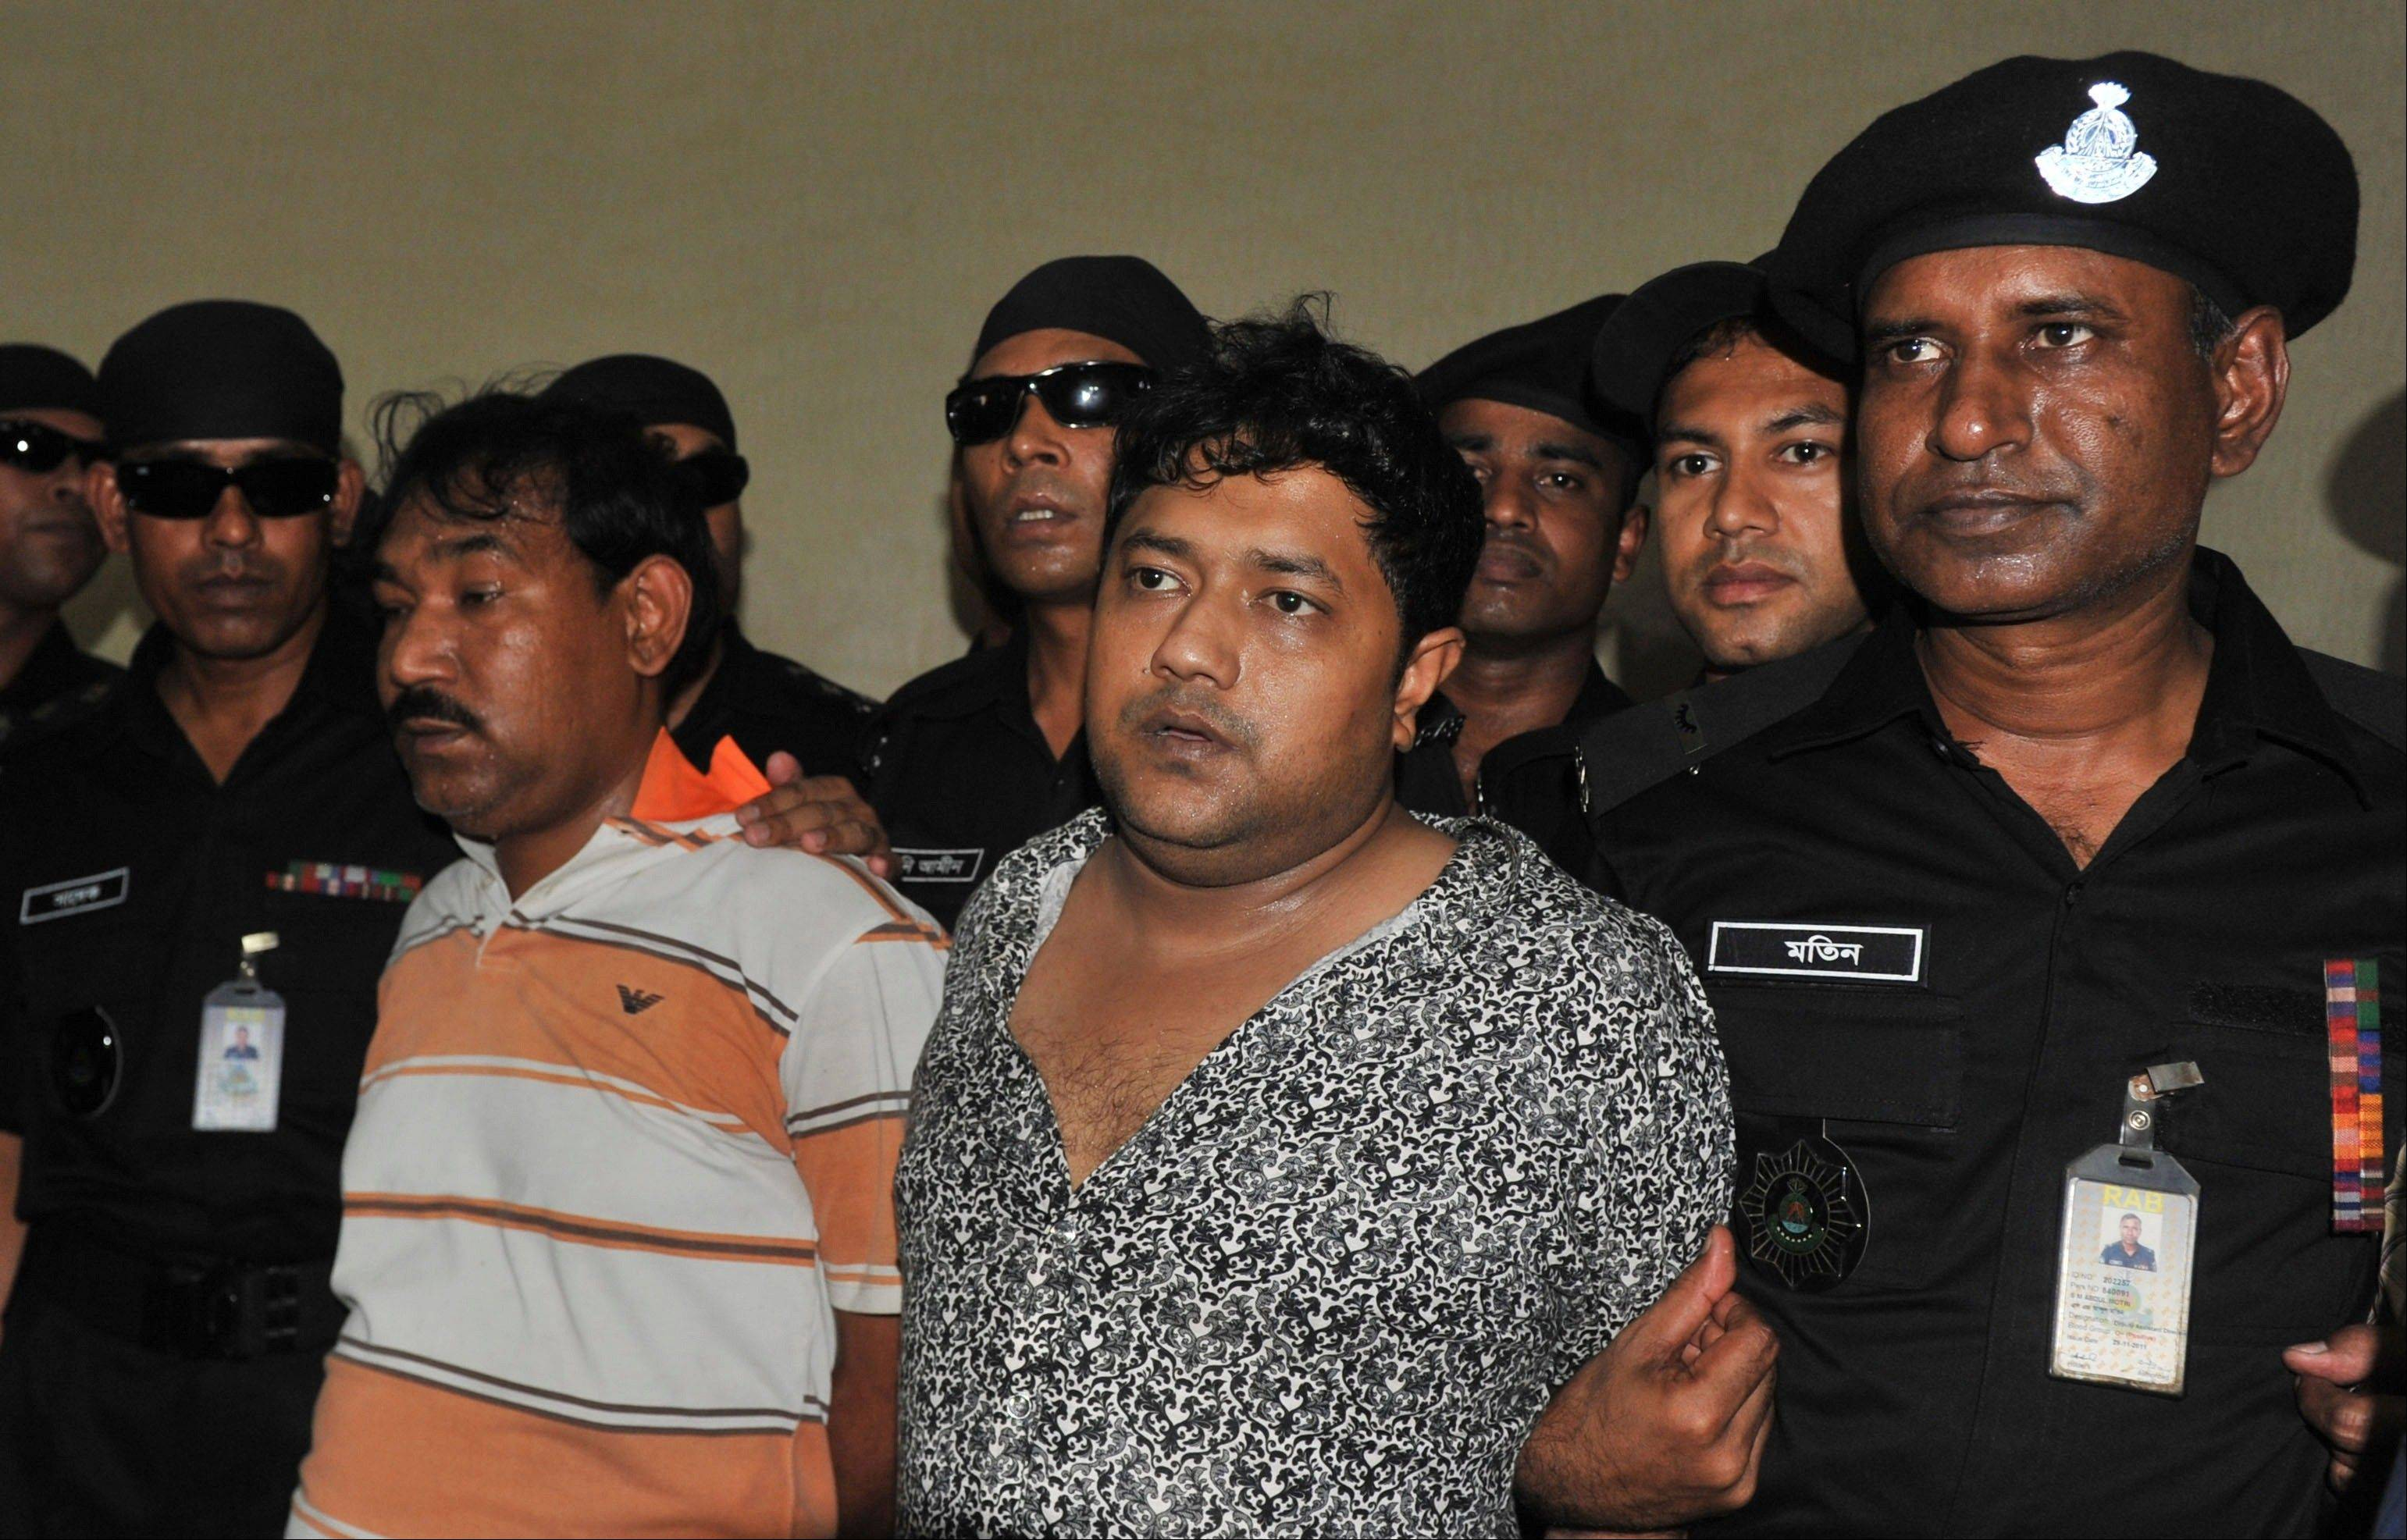 Mohammed Sohel Rana, centre right, the fugitive owner of an illegally-constructed building that collapsed last week in Bangladesh, killing some 377 people, is paraded by Rapid Action Battalion commandoes for the media along with an unidentified alleged accomplice, left, in Dhaka, Bangladesh, Sunday.